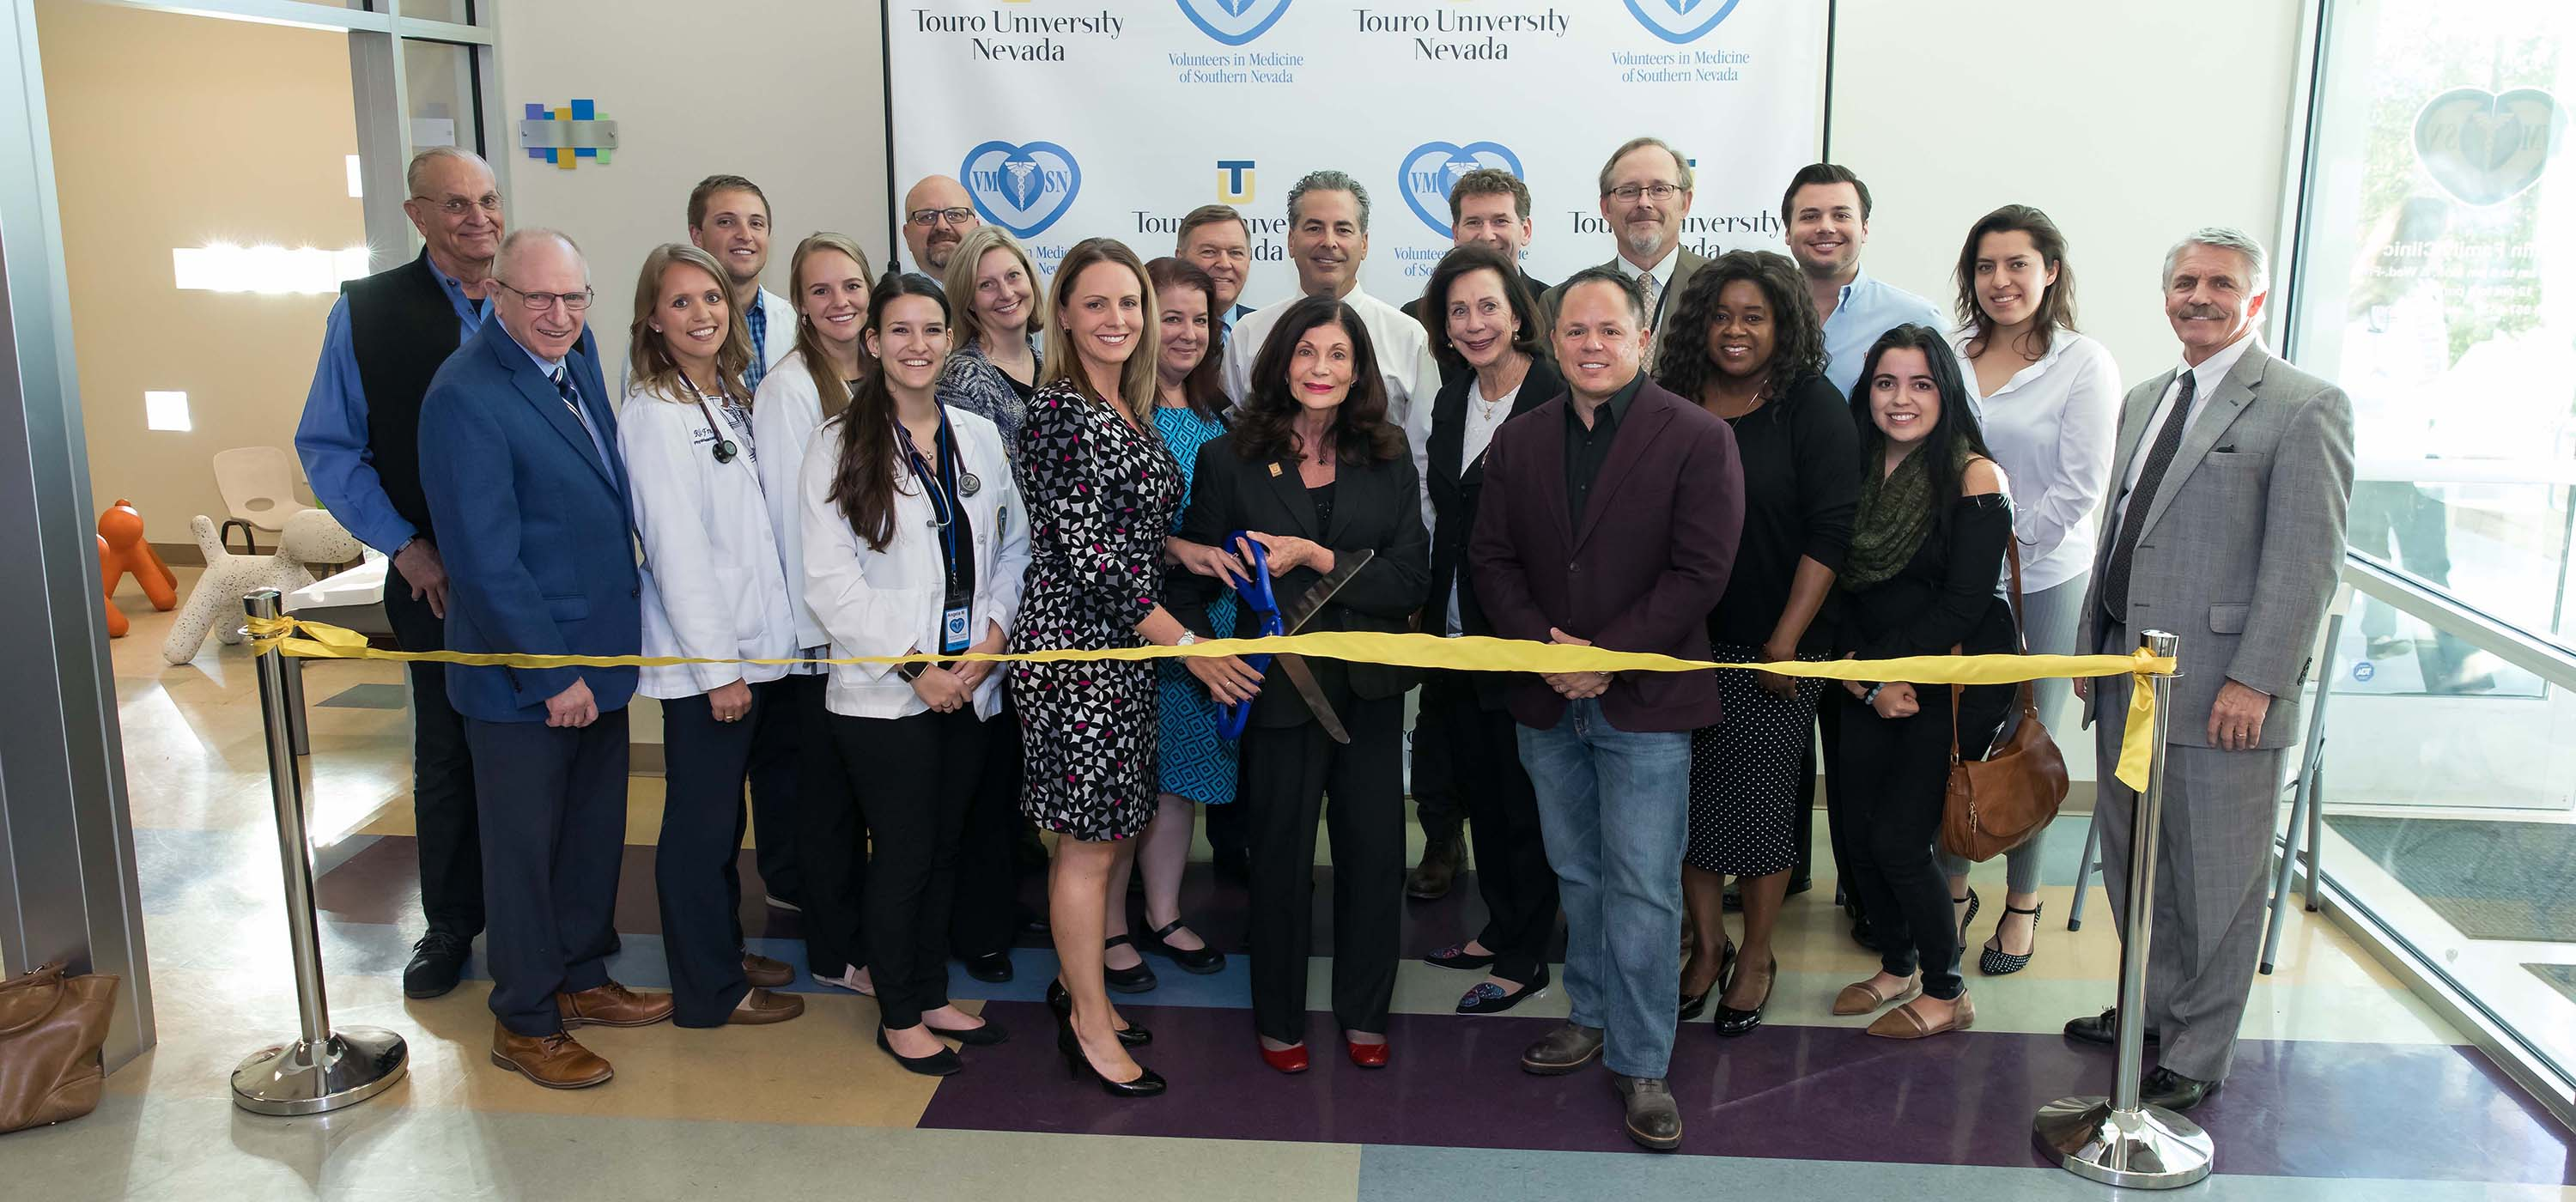 The ribbon cutting ceremony.